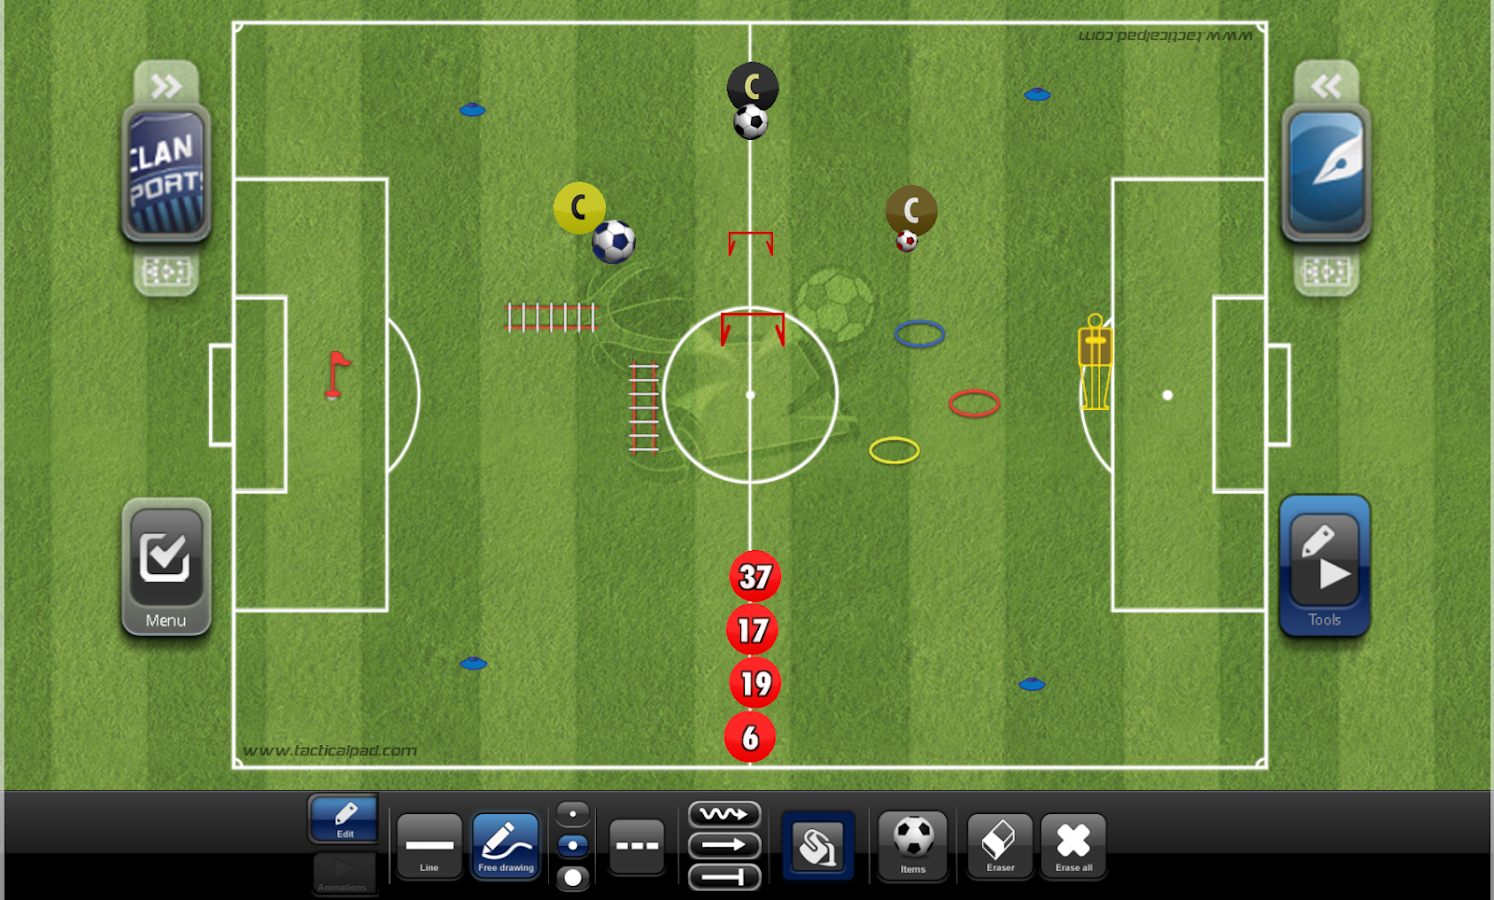 TacticalPad: Coach's Whiteboard, Sessions & Drills- screenshot